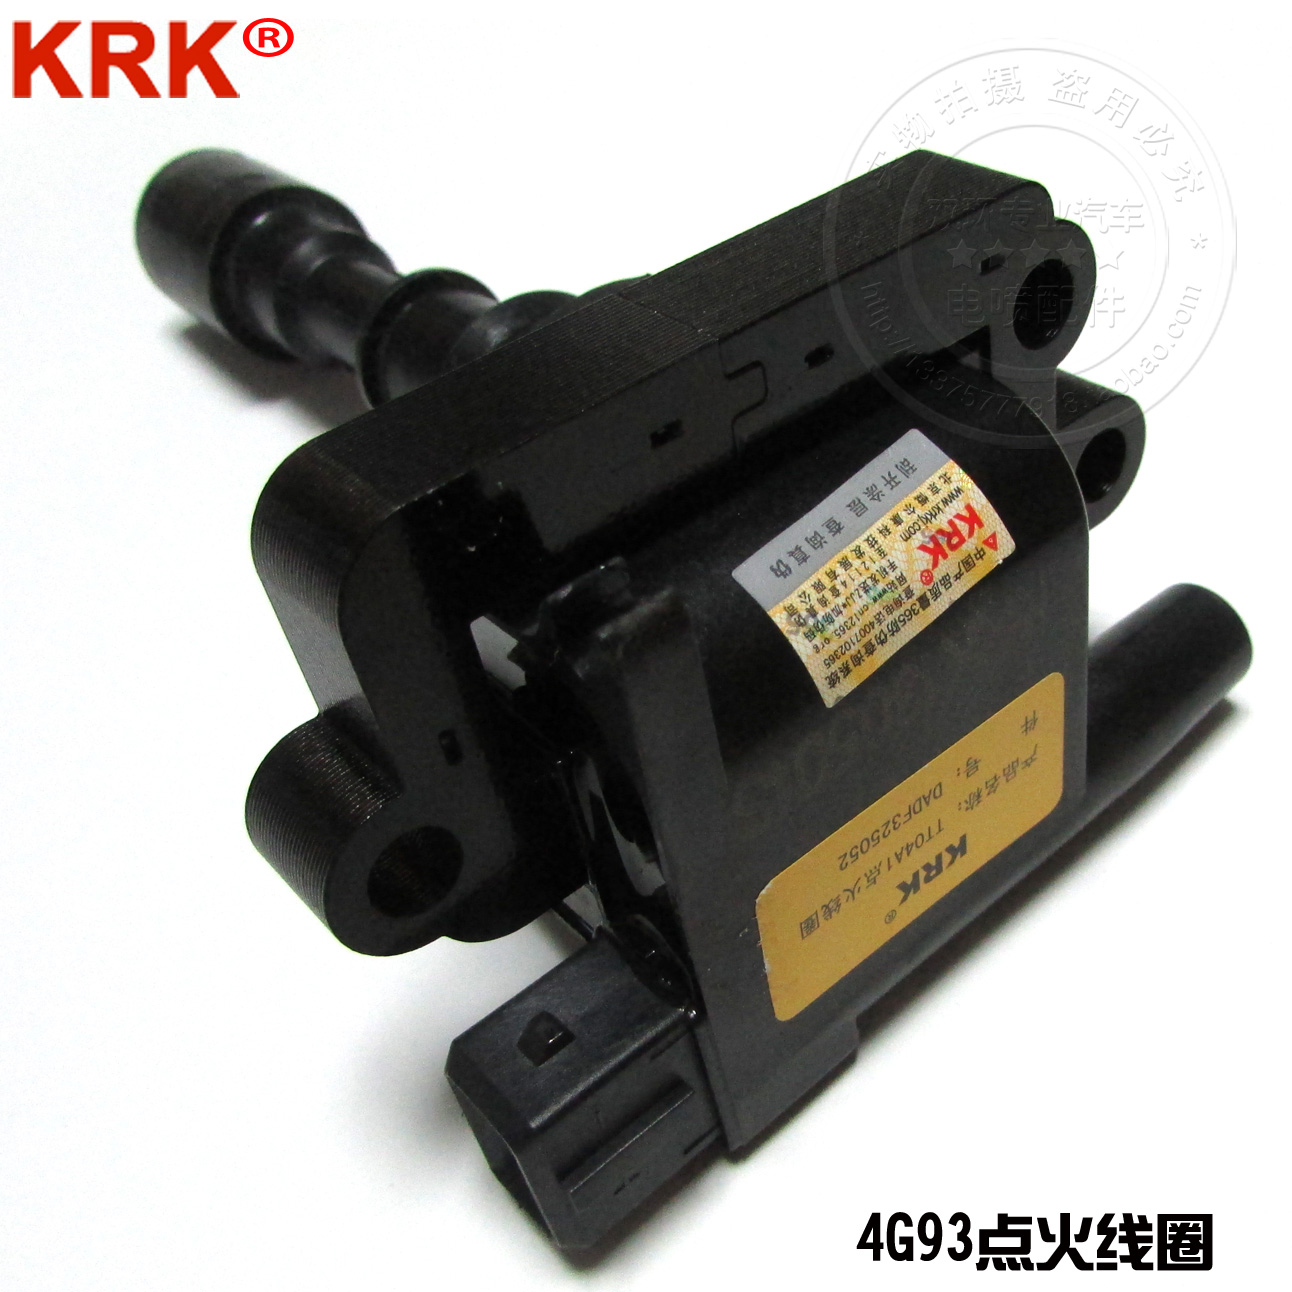 Free Delivery.2.0.4G94D high voltage ignition coil KRK F01R00A012